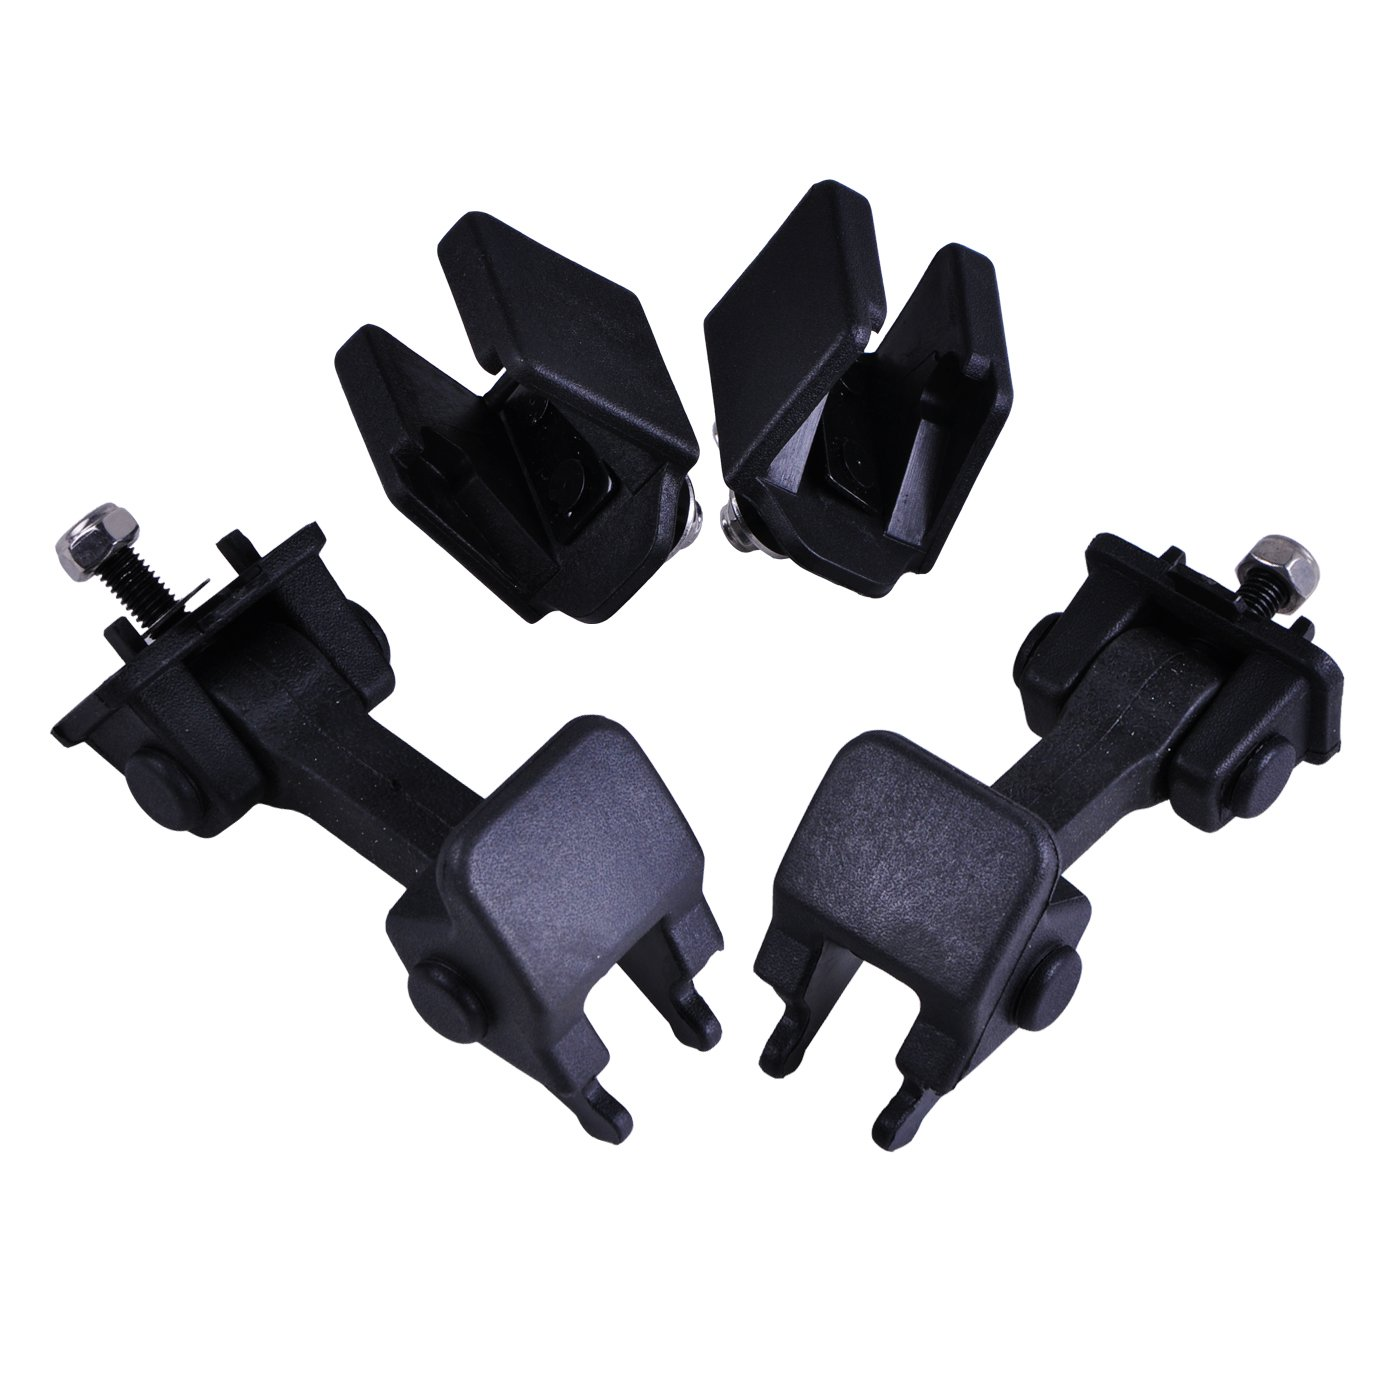 omotor Black ABS Hood Cover Latches Catch Set Kit for 1997-2006 Jeep Wrangler TJ